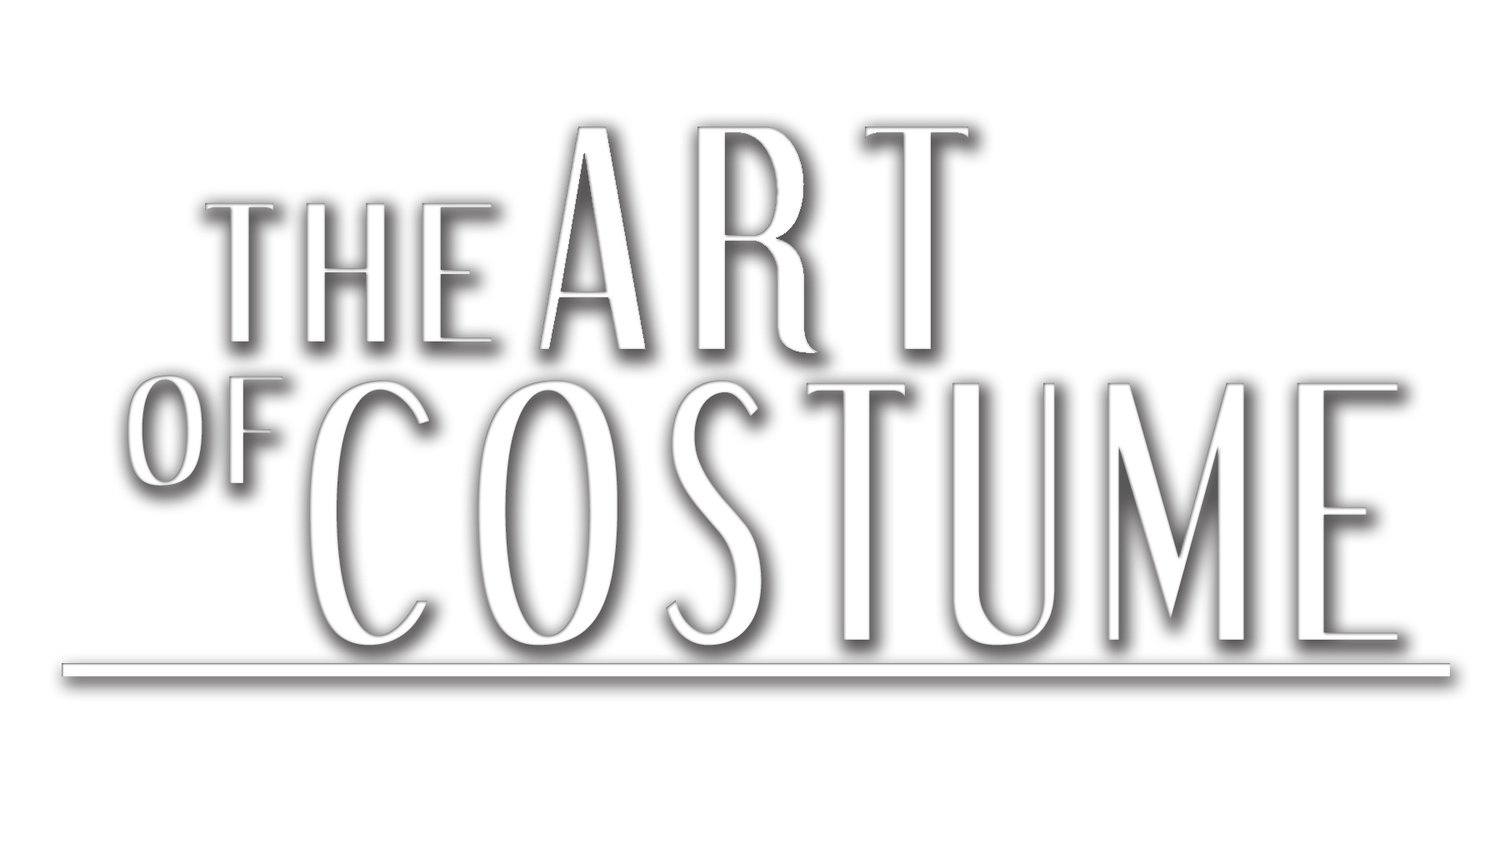 The Art of Costume